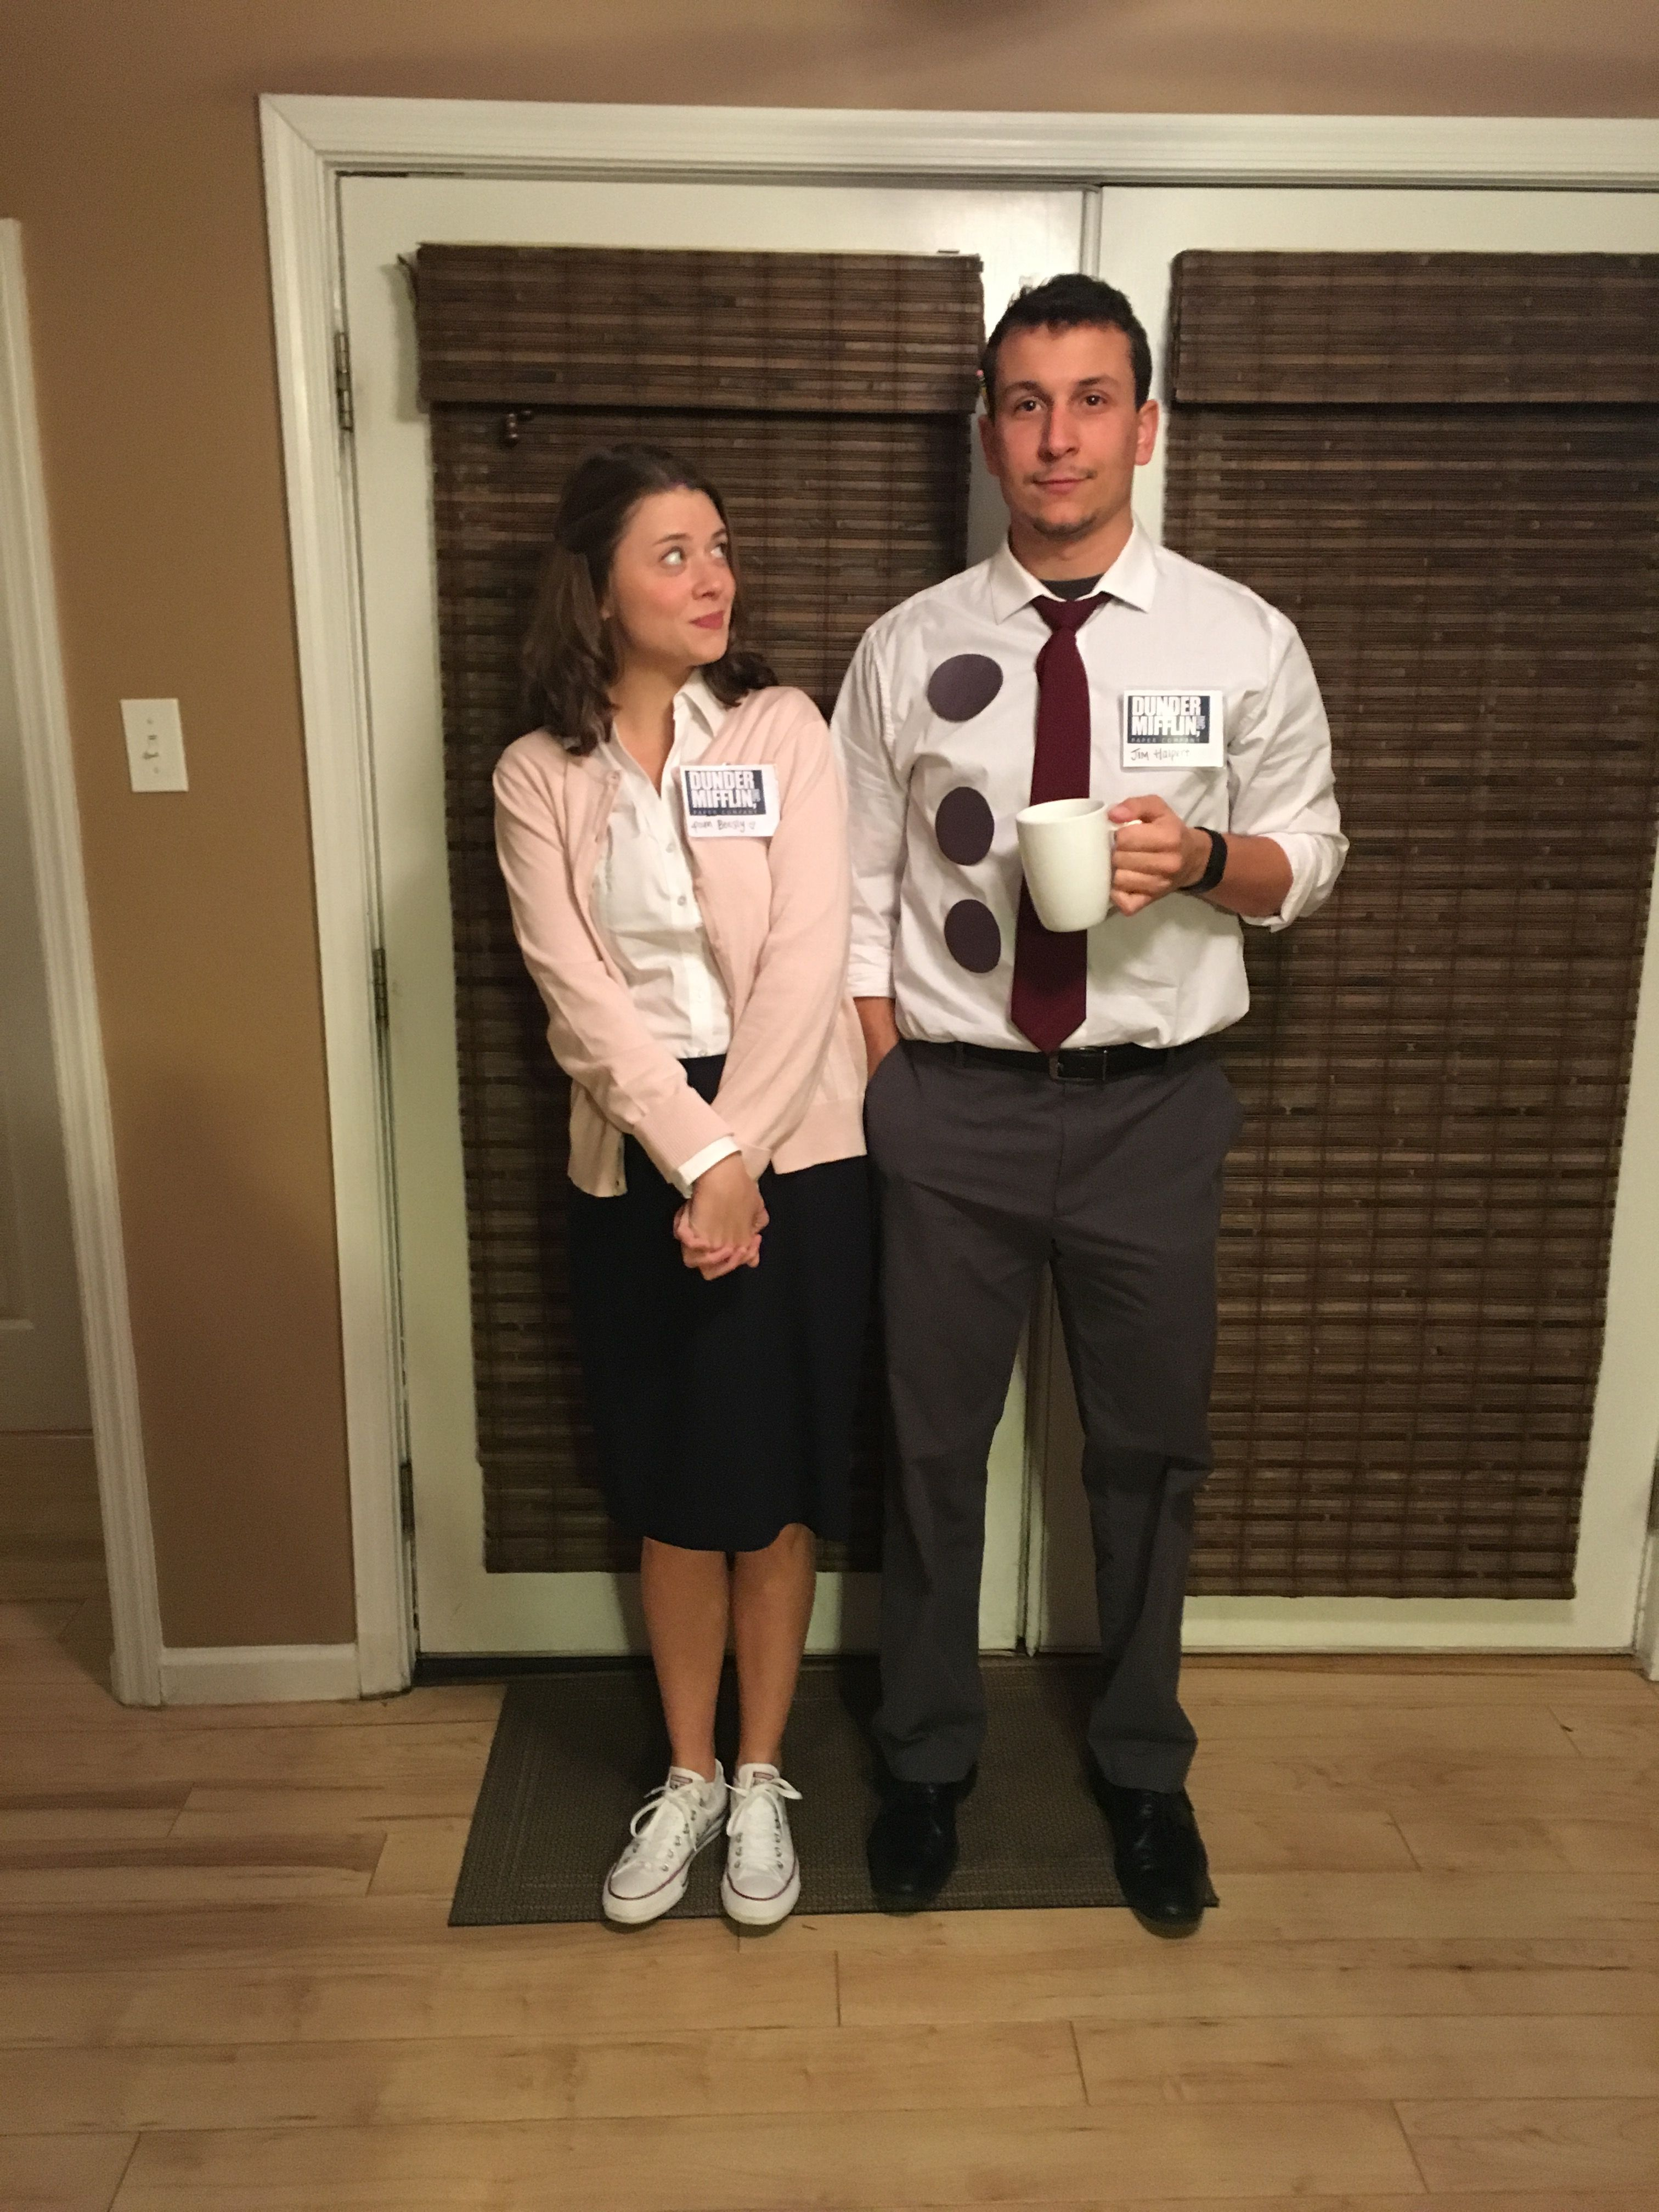 The Office  Halloween Costume- Jim and Pam Couple.    sc 1 st  Pinterest & The Office